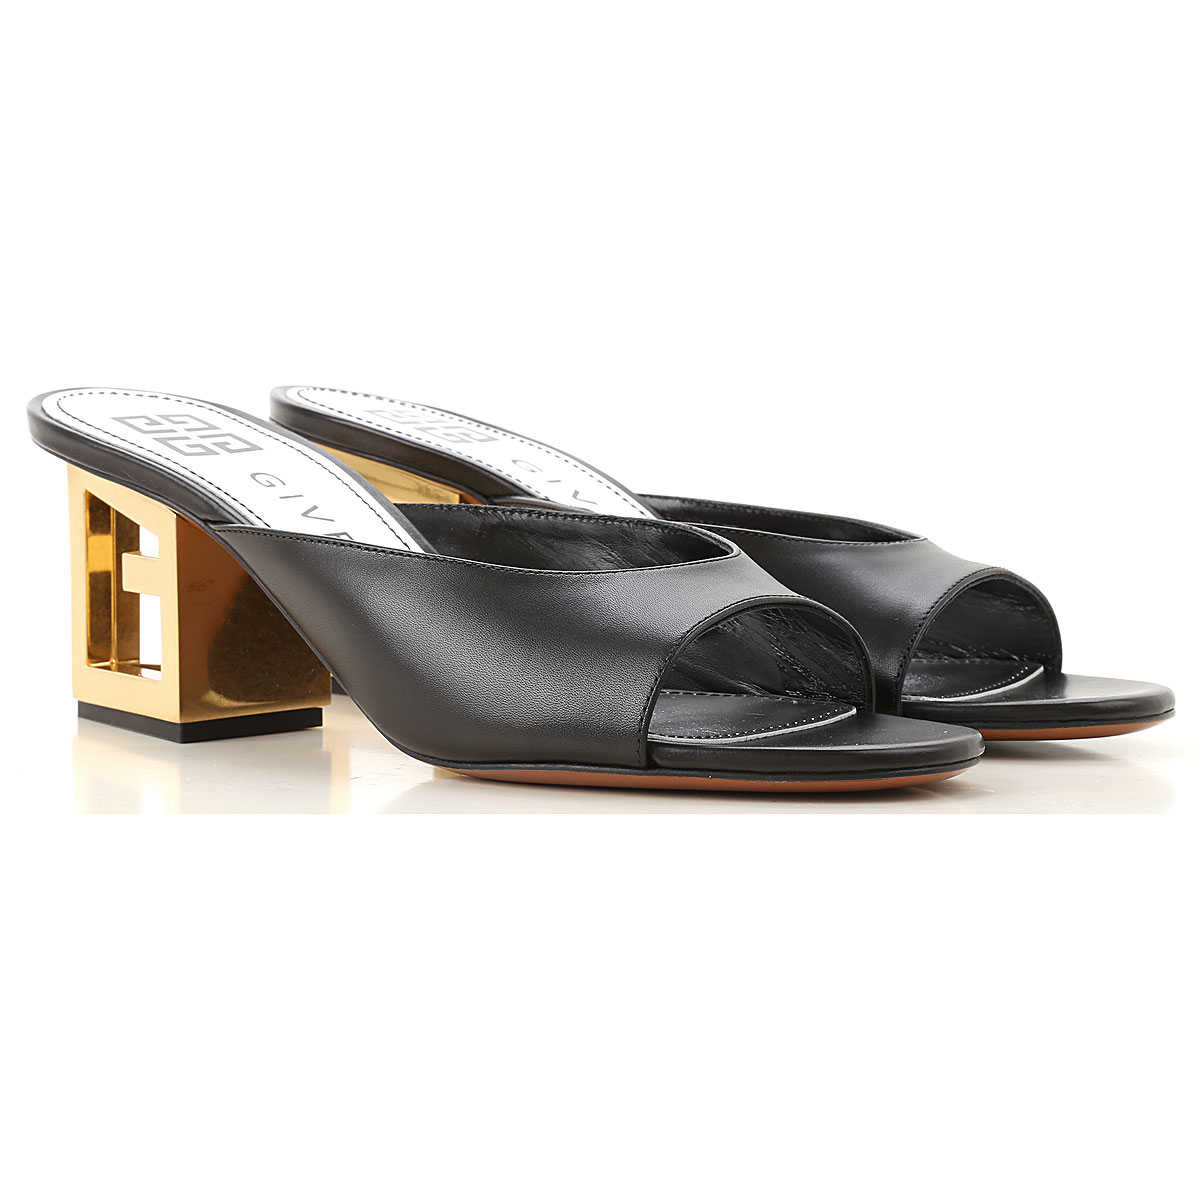 Givenchy Sandals for Women, Black